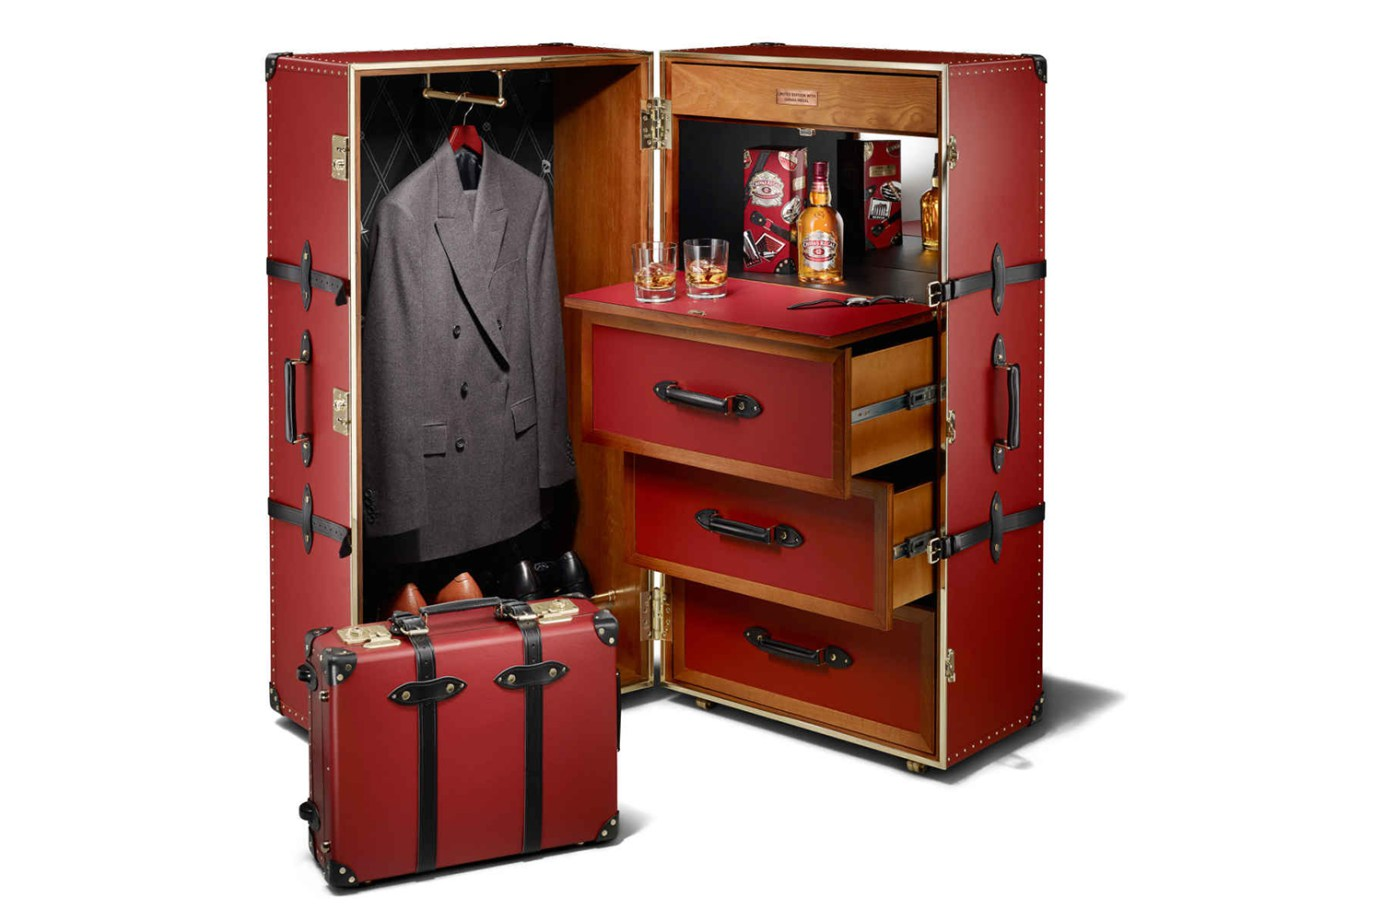 chivas-regal-globe-trotter-travel-trunk-1